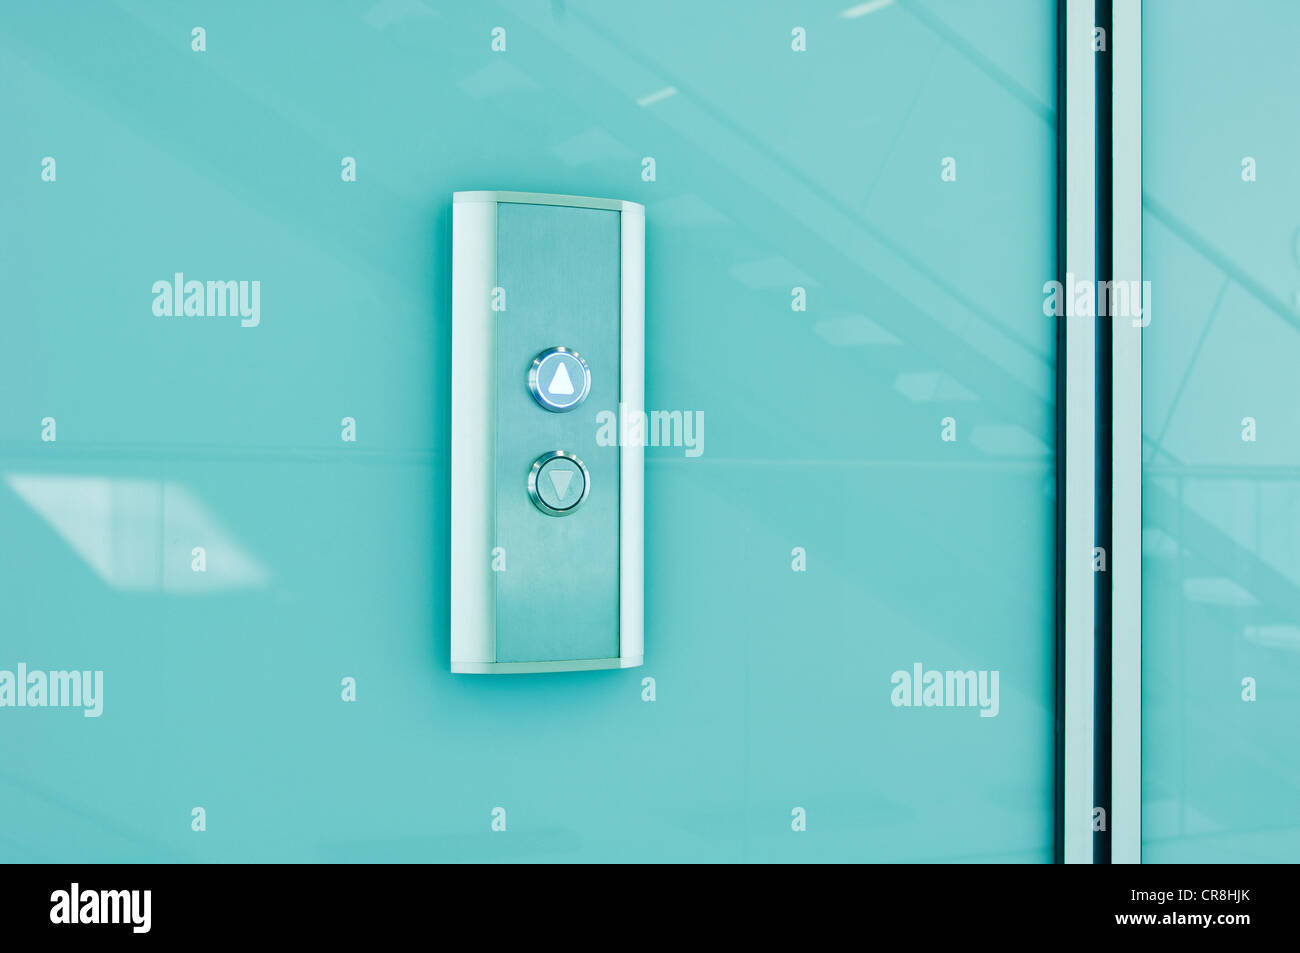 Elevator controls in modern office block - Stock Image